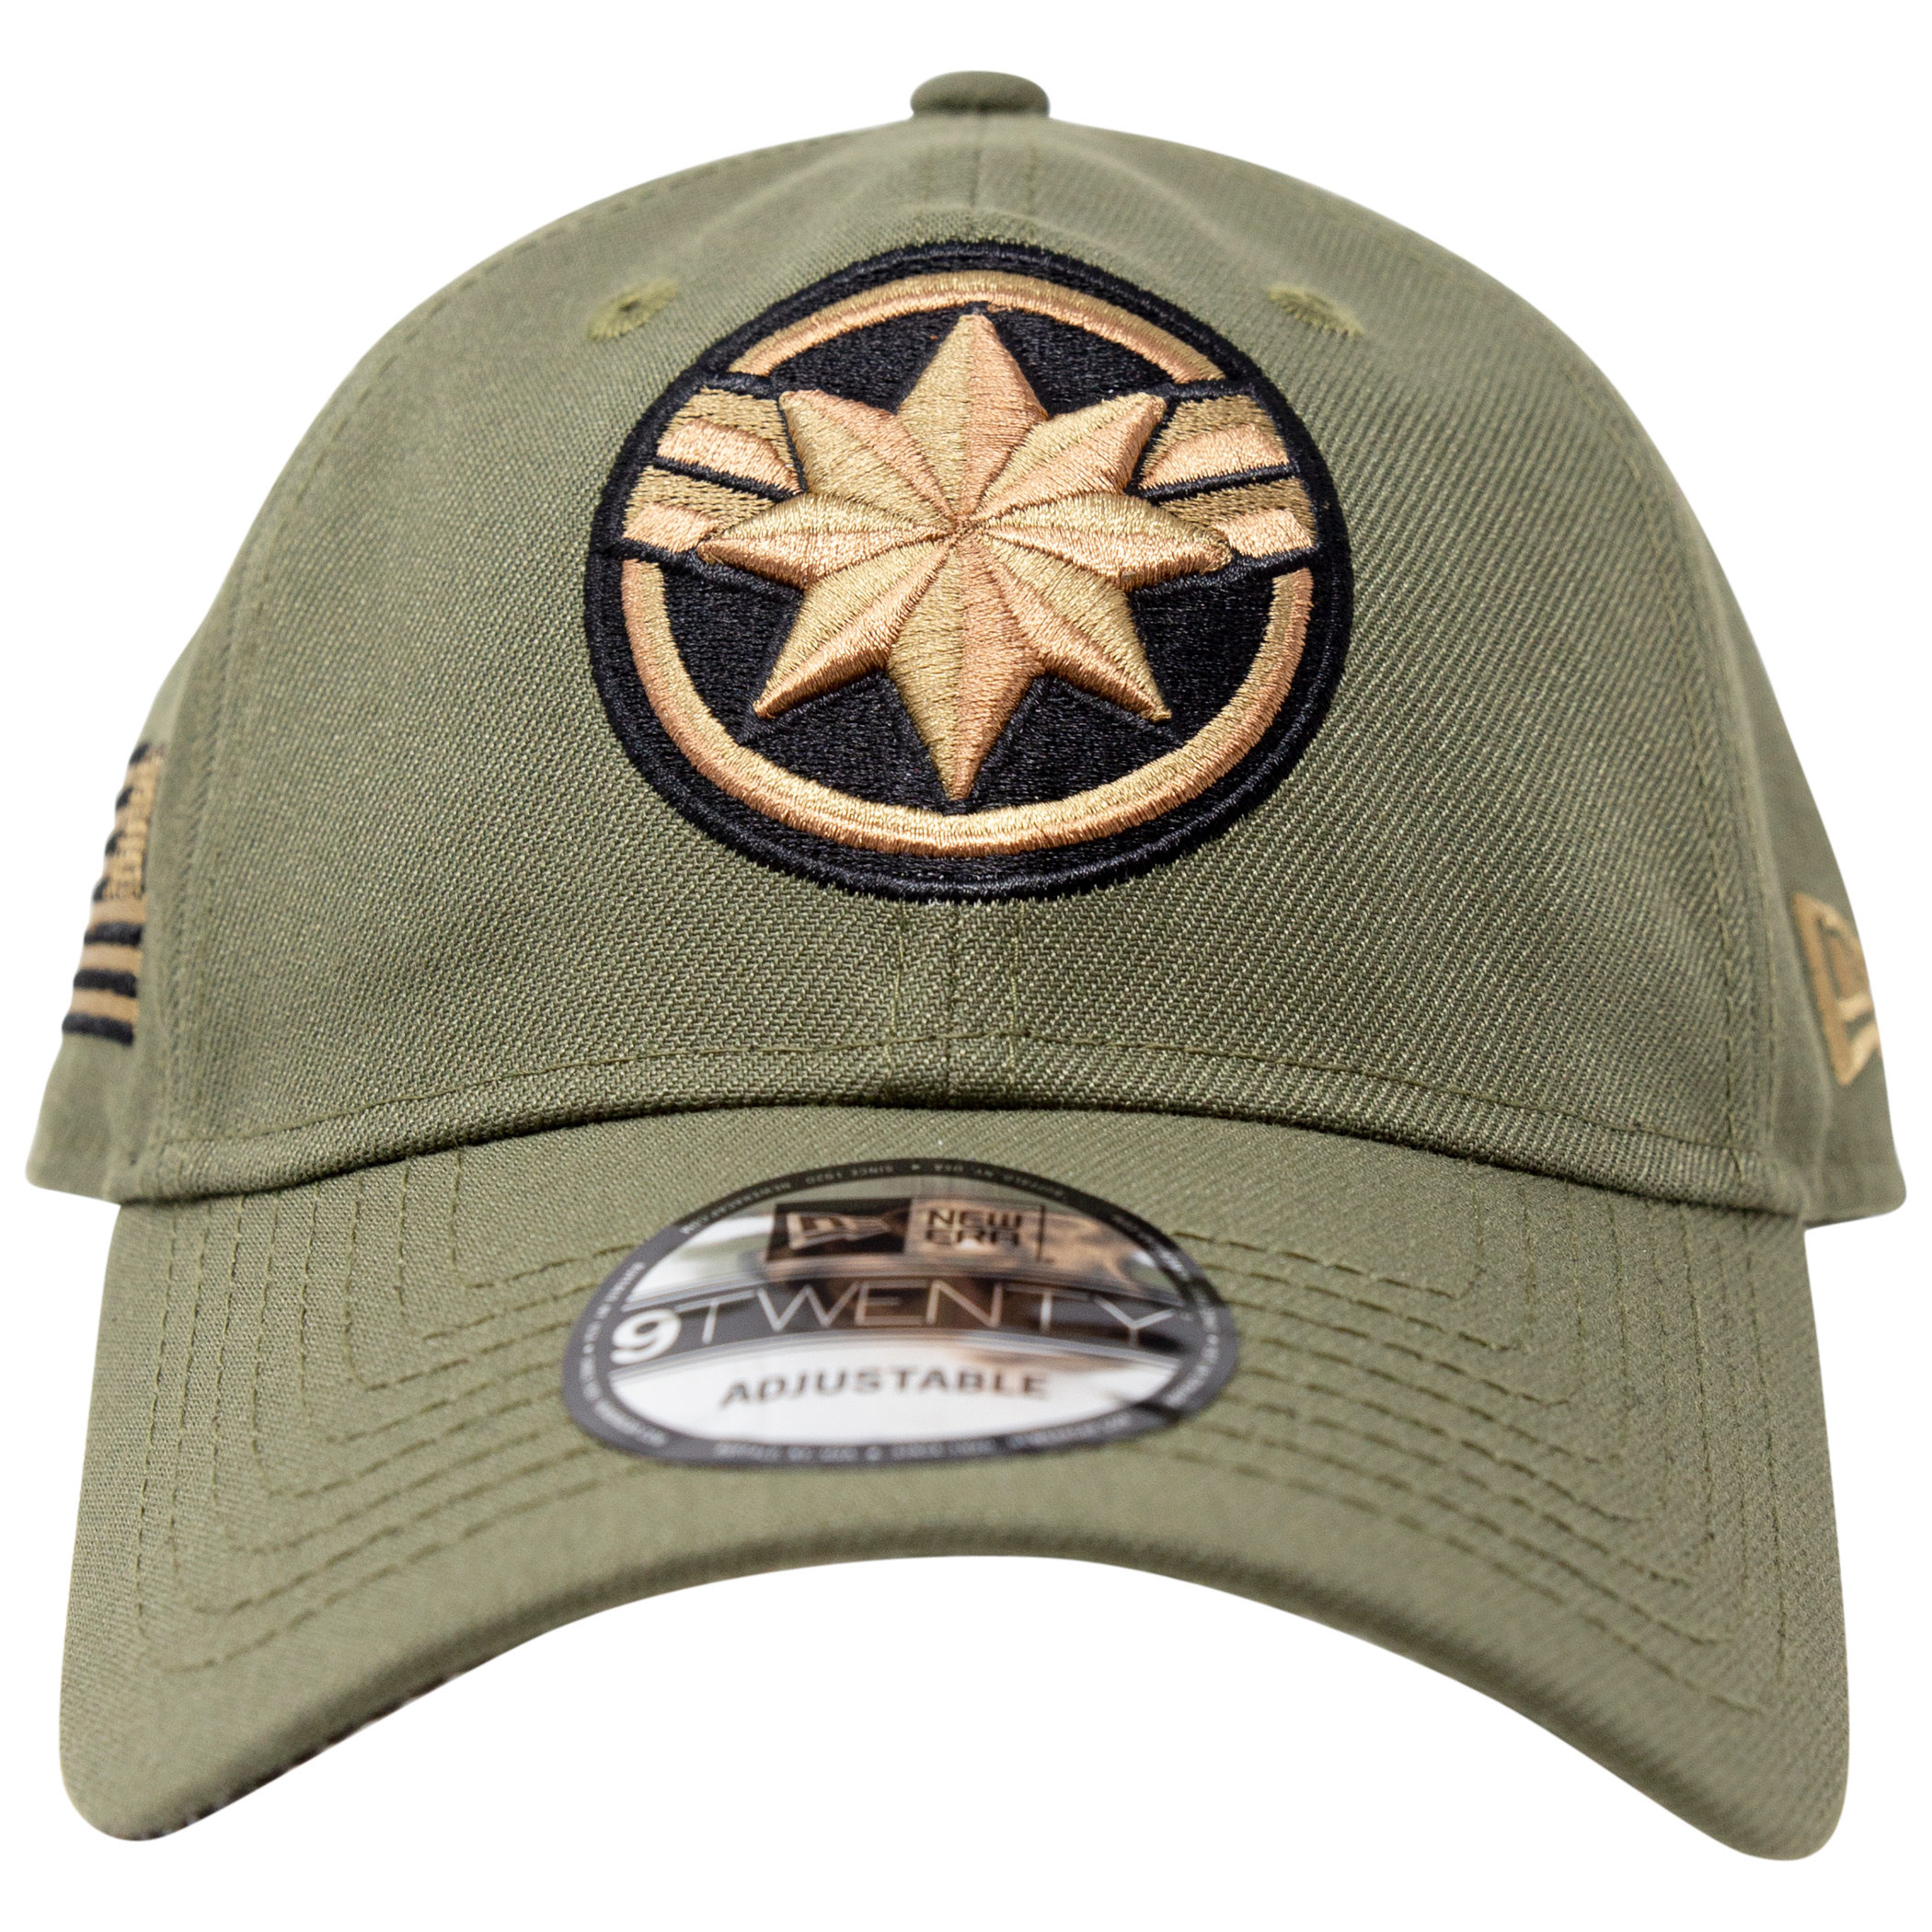 Captain Marvel Salute To Service New Era 9Twenty Adjustable Hat